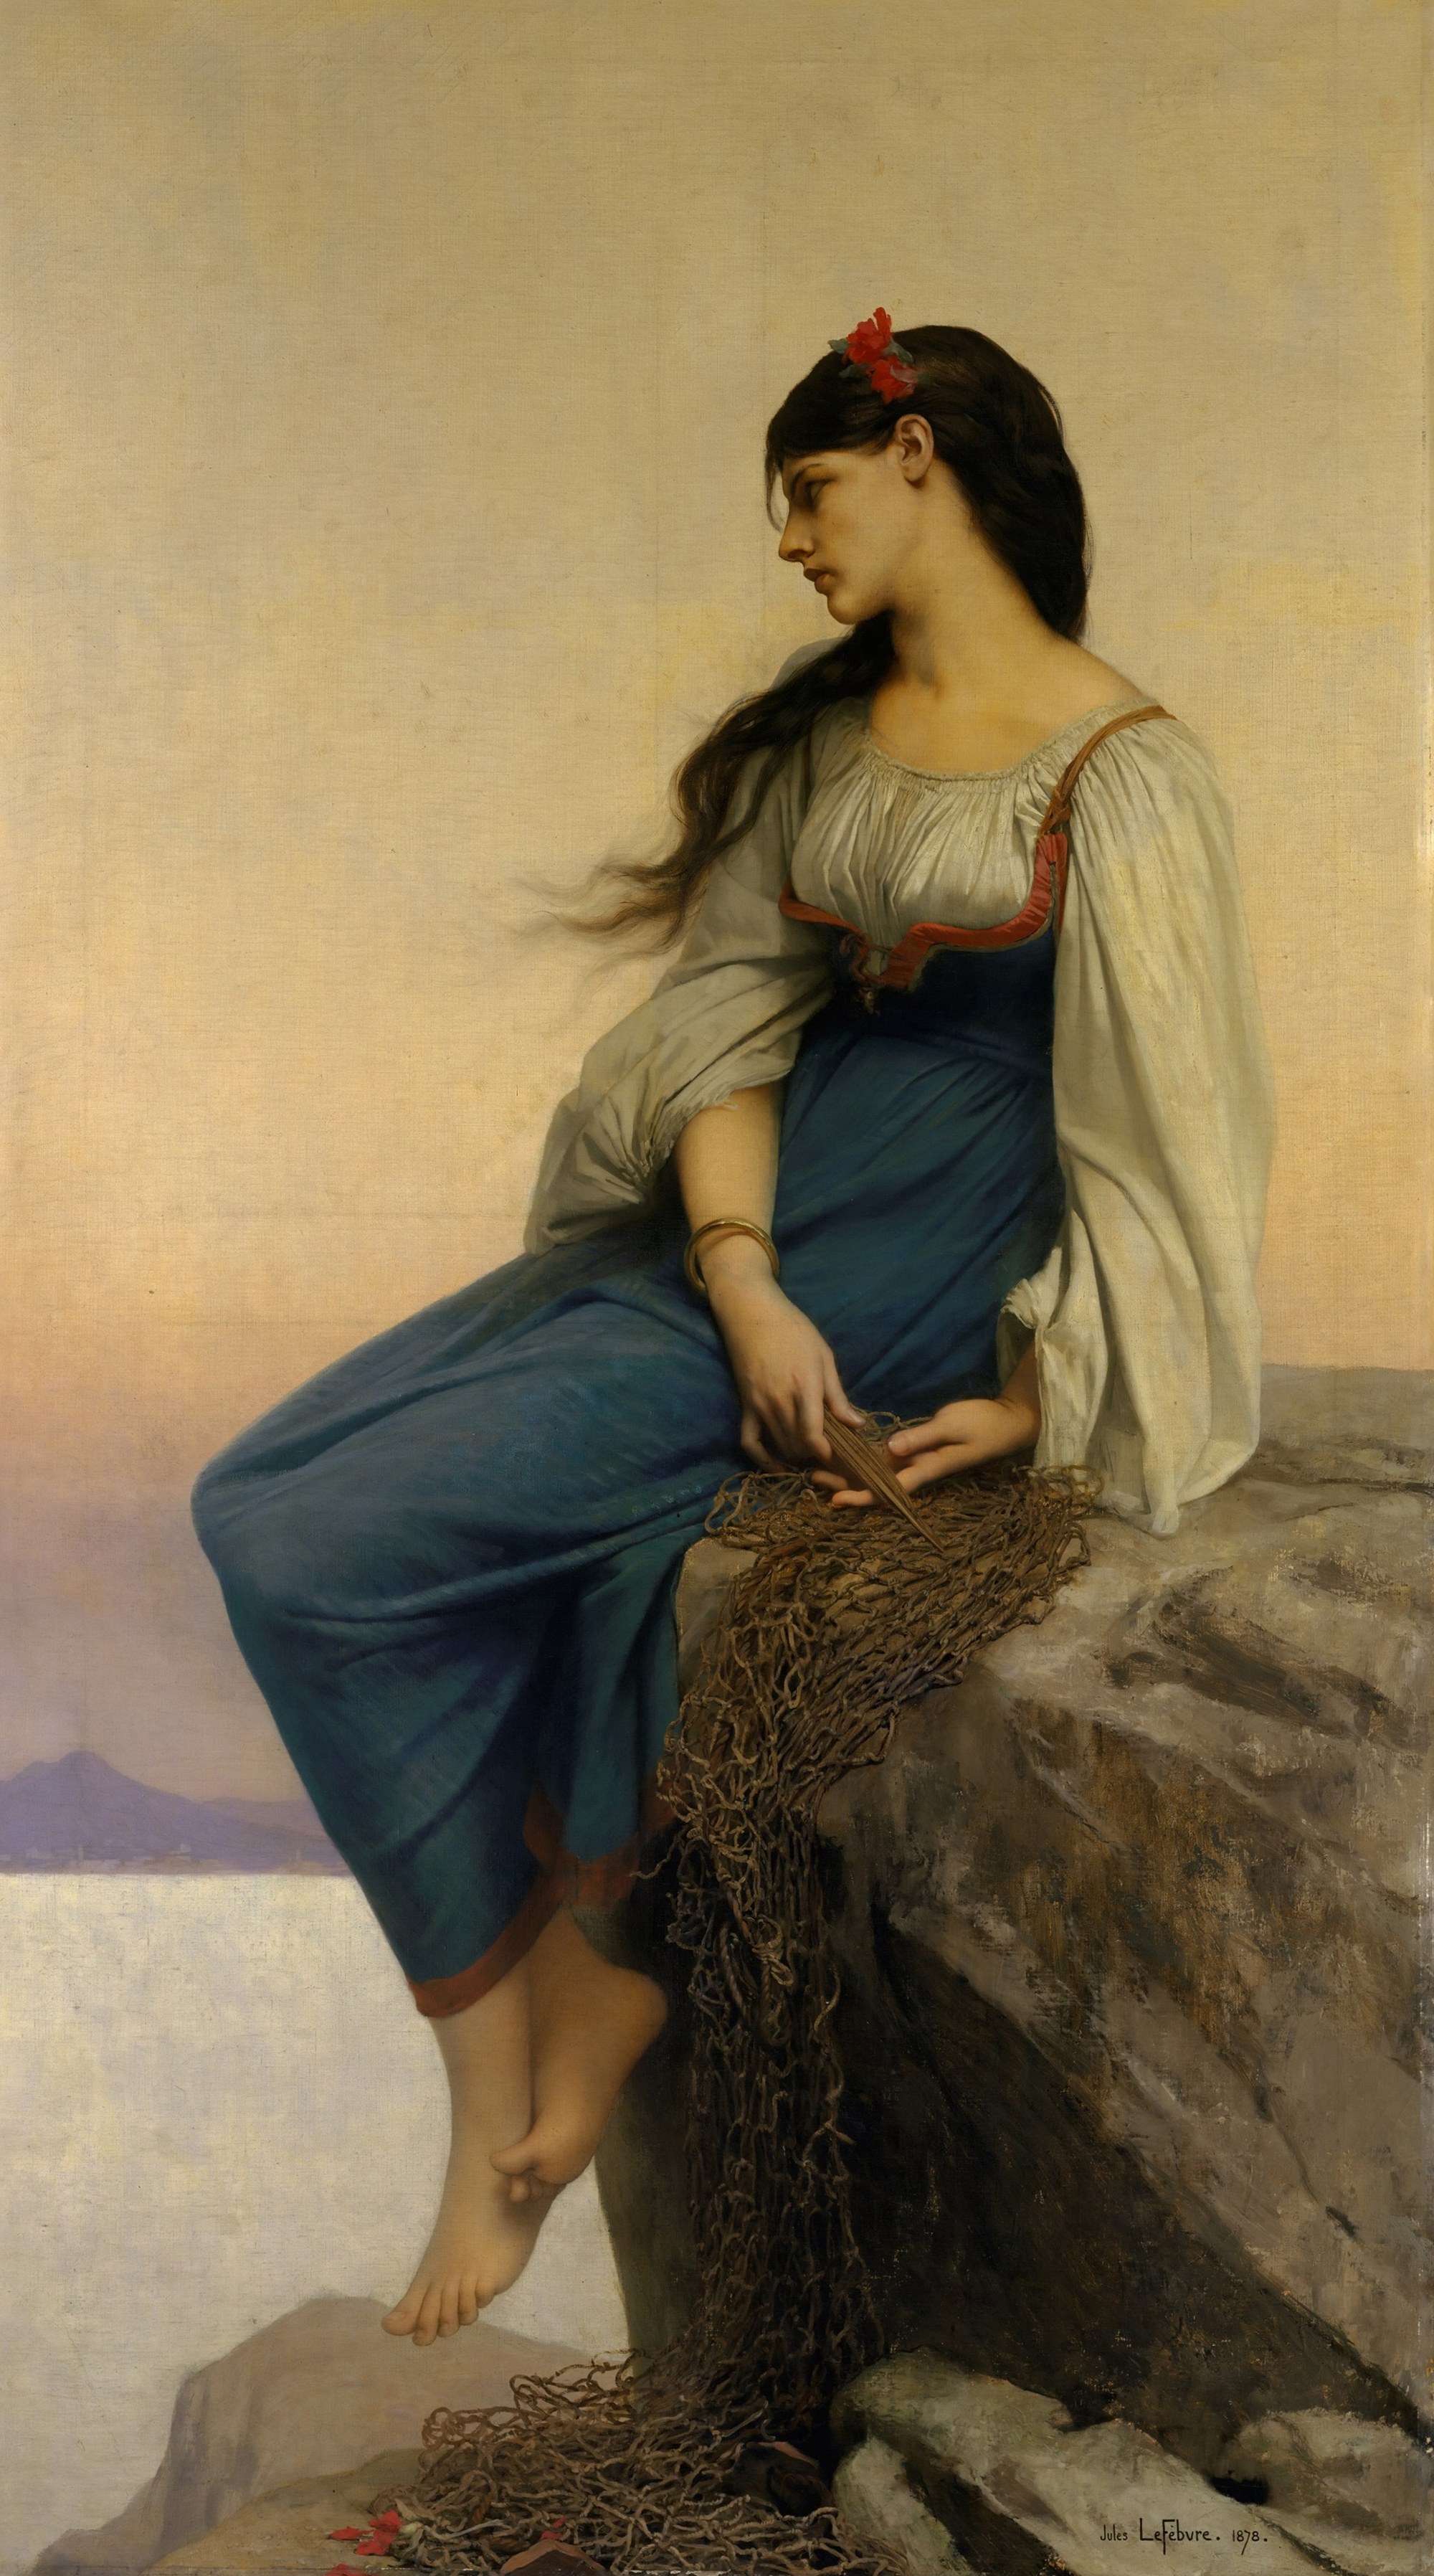 GOOD quality # HOME OFFICE wall Decorative art # Middle East Turkey Graziella BY JULES JOSEPH LEFEBVRE 1878 PRINT ART PAINTING